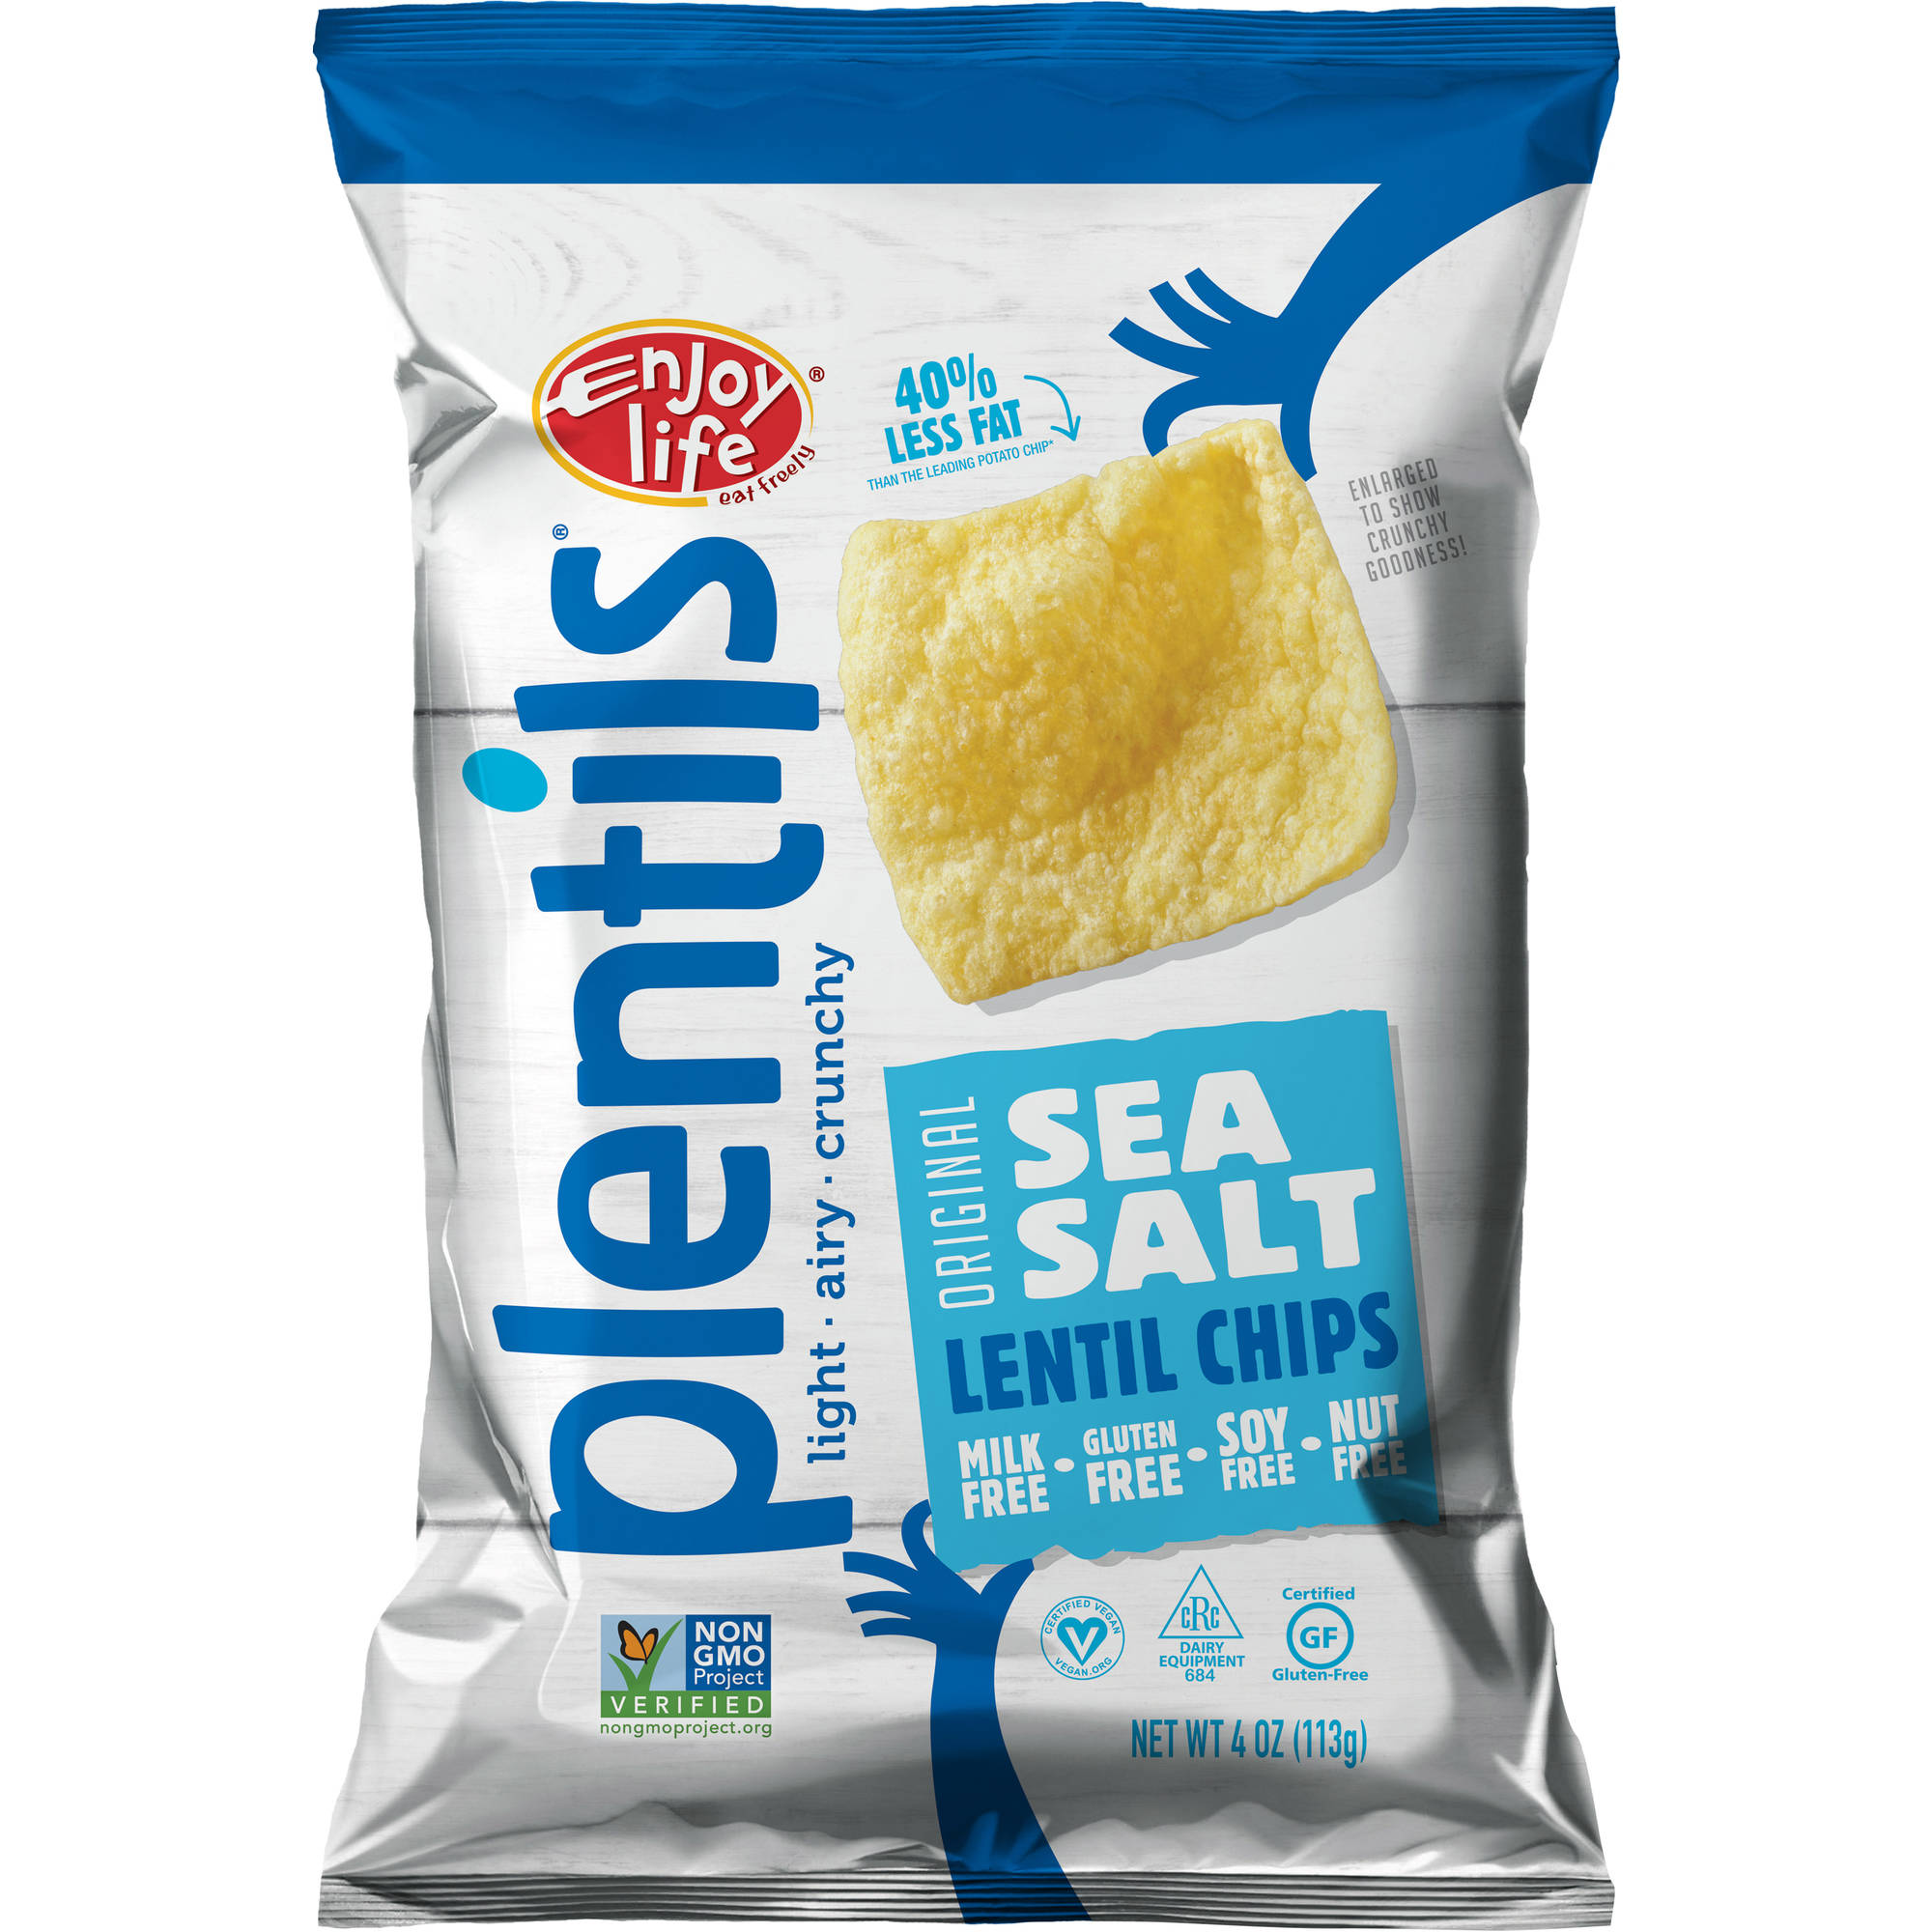 Enjoy Life Plentils Original Sea Salt Lentil Chips, 4 oz, (Pack of 12)